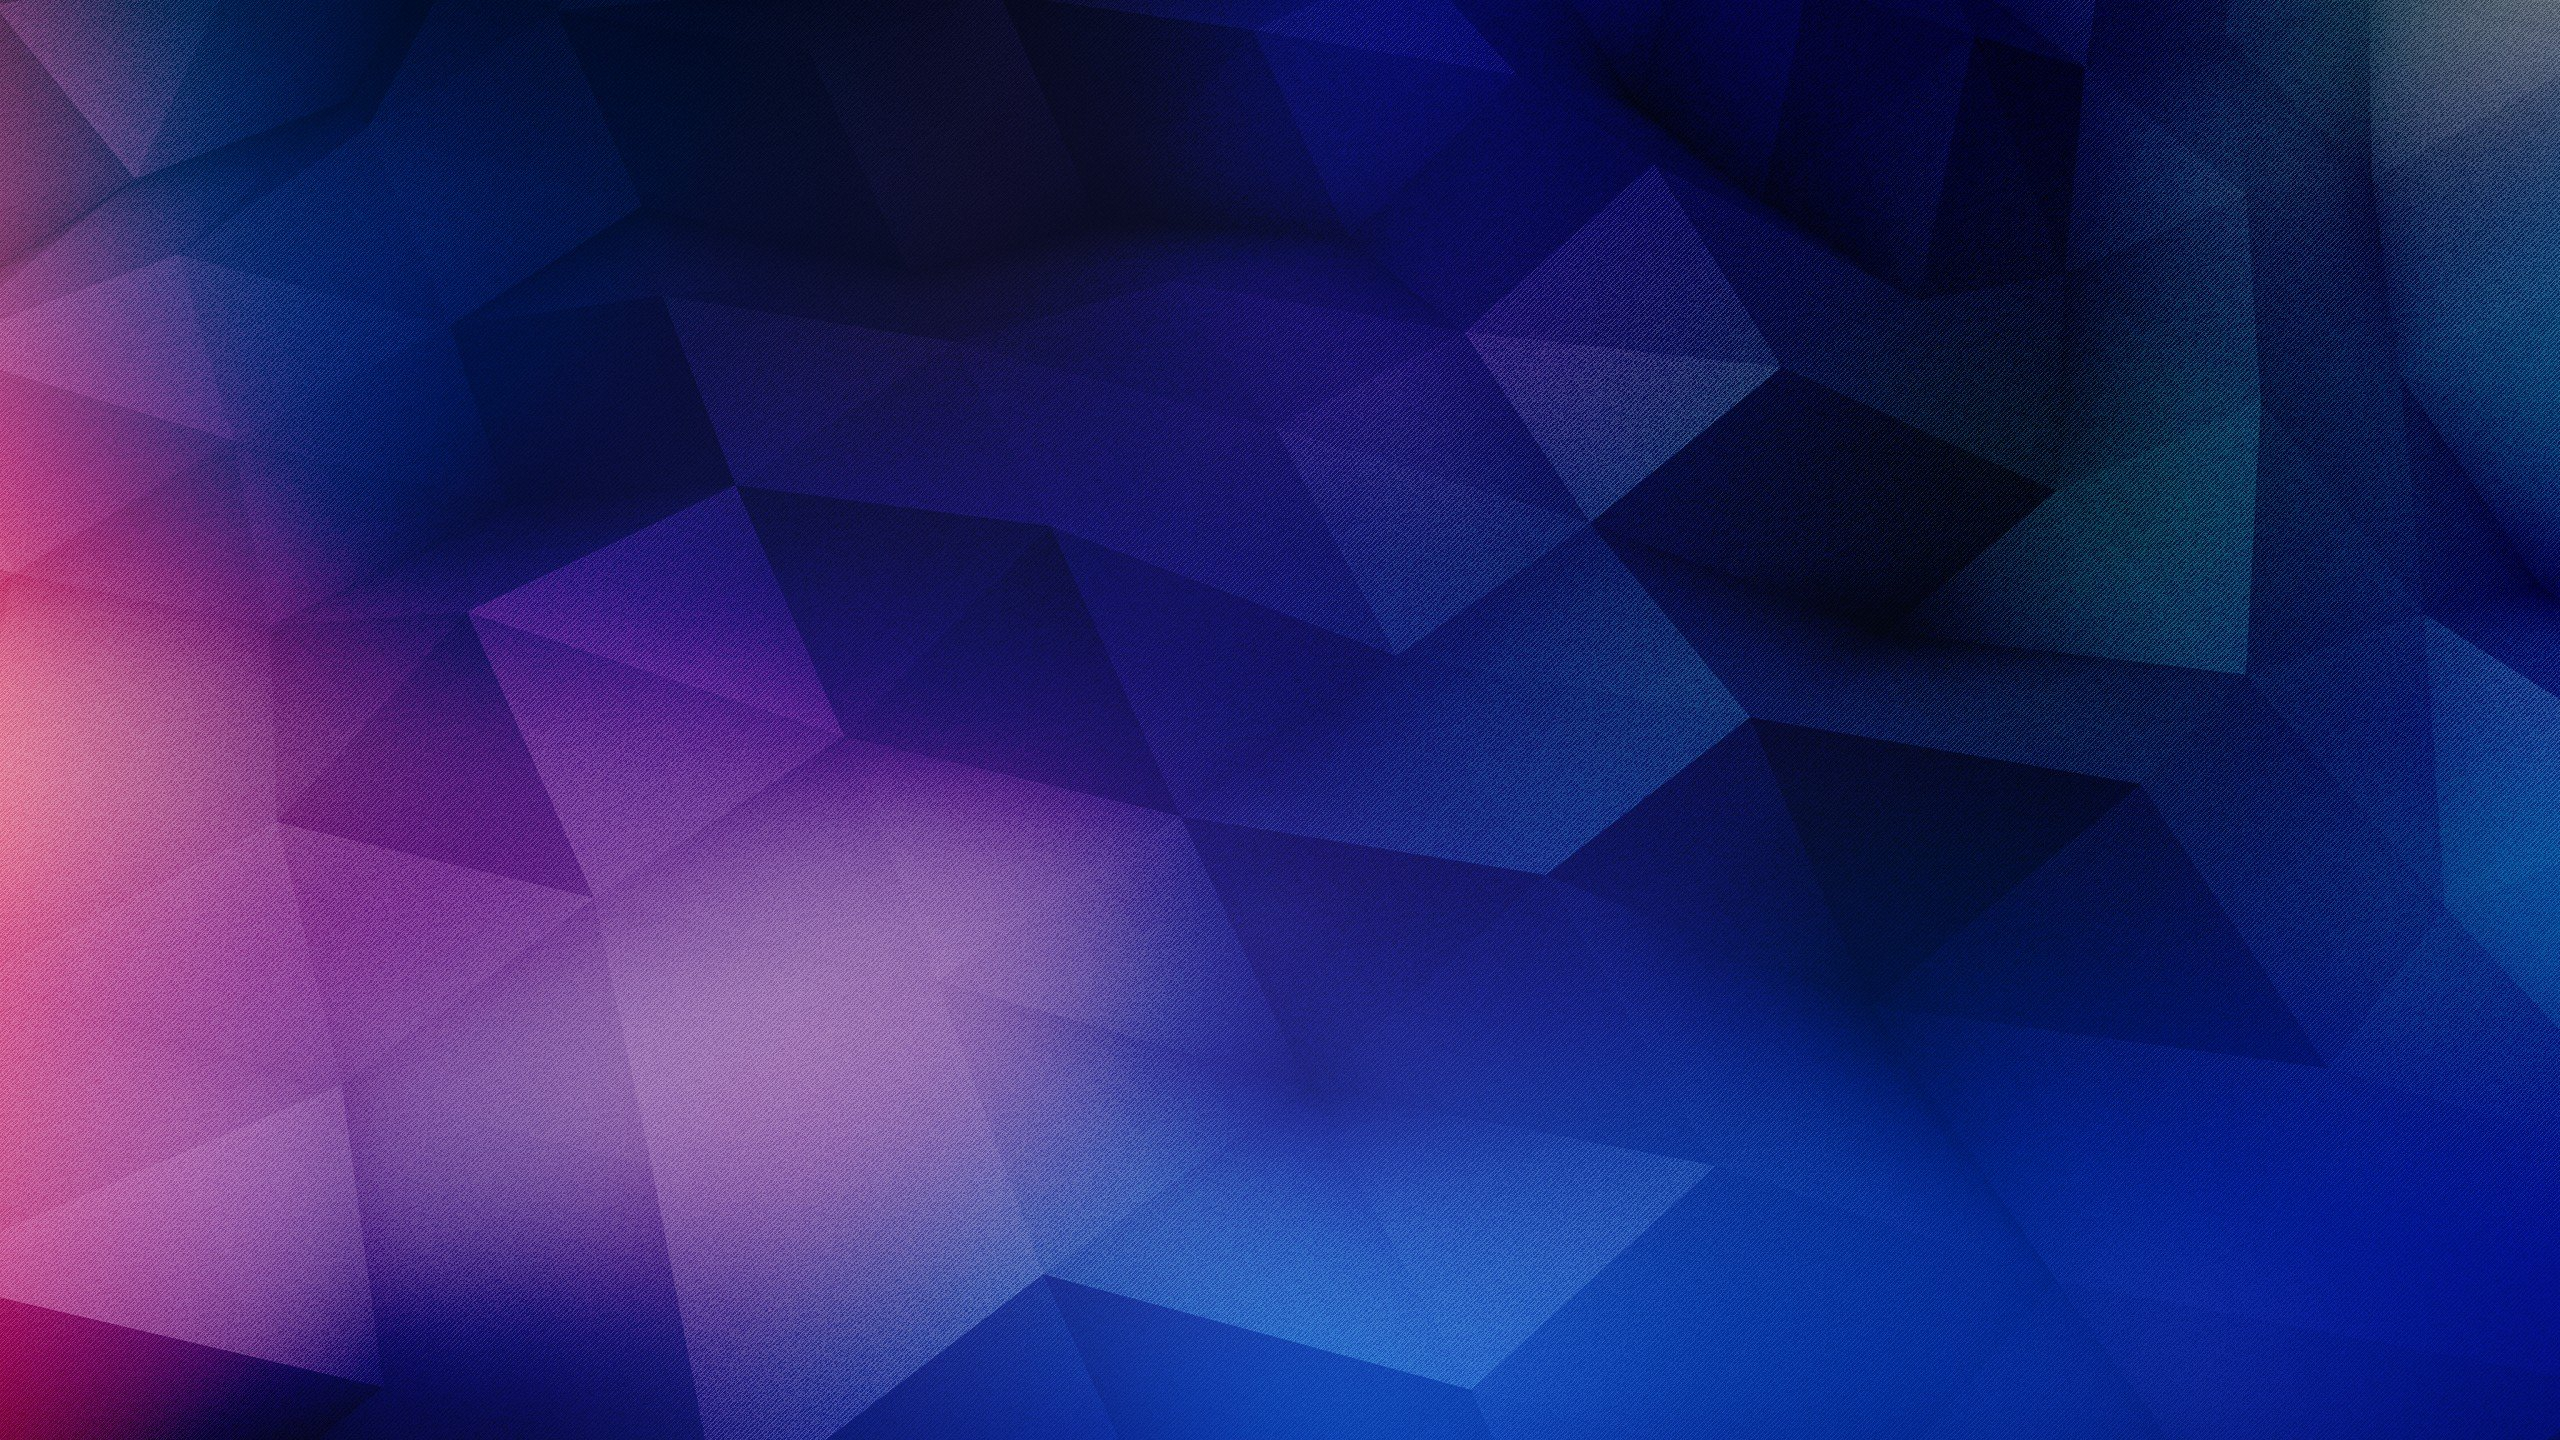 Geometry For Presentation PPT Backgrounds